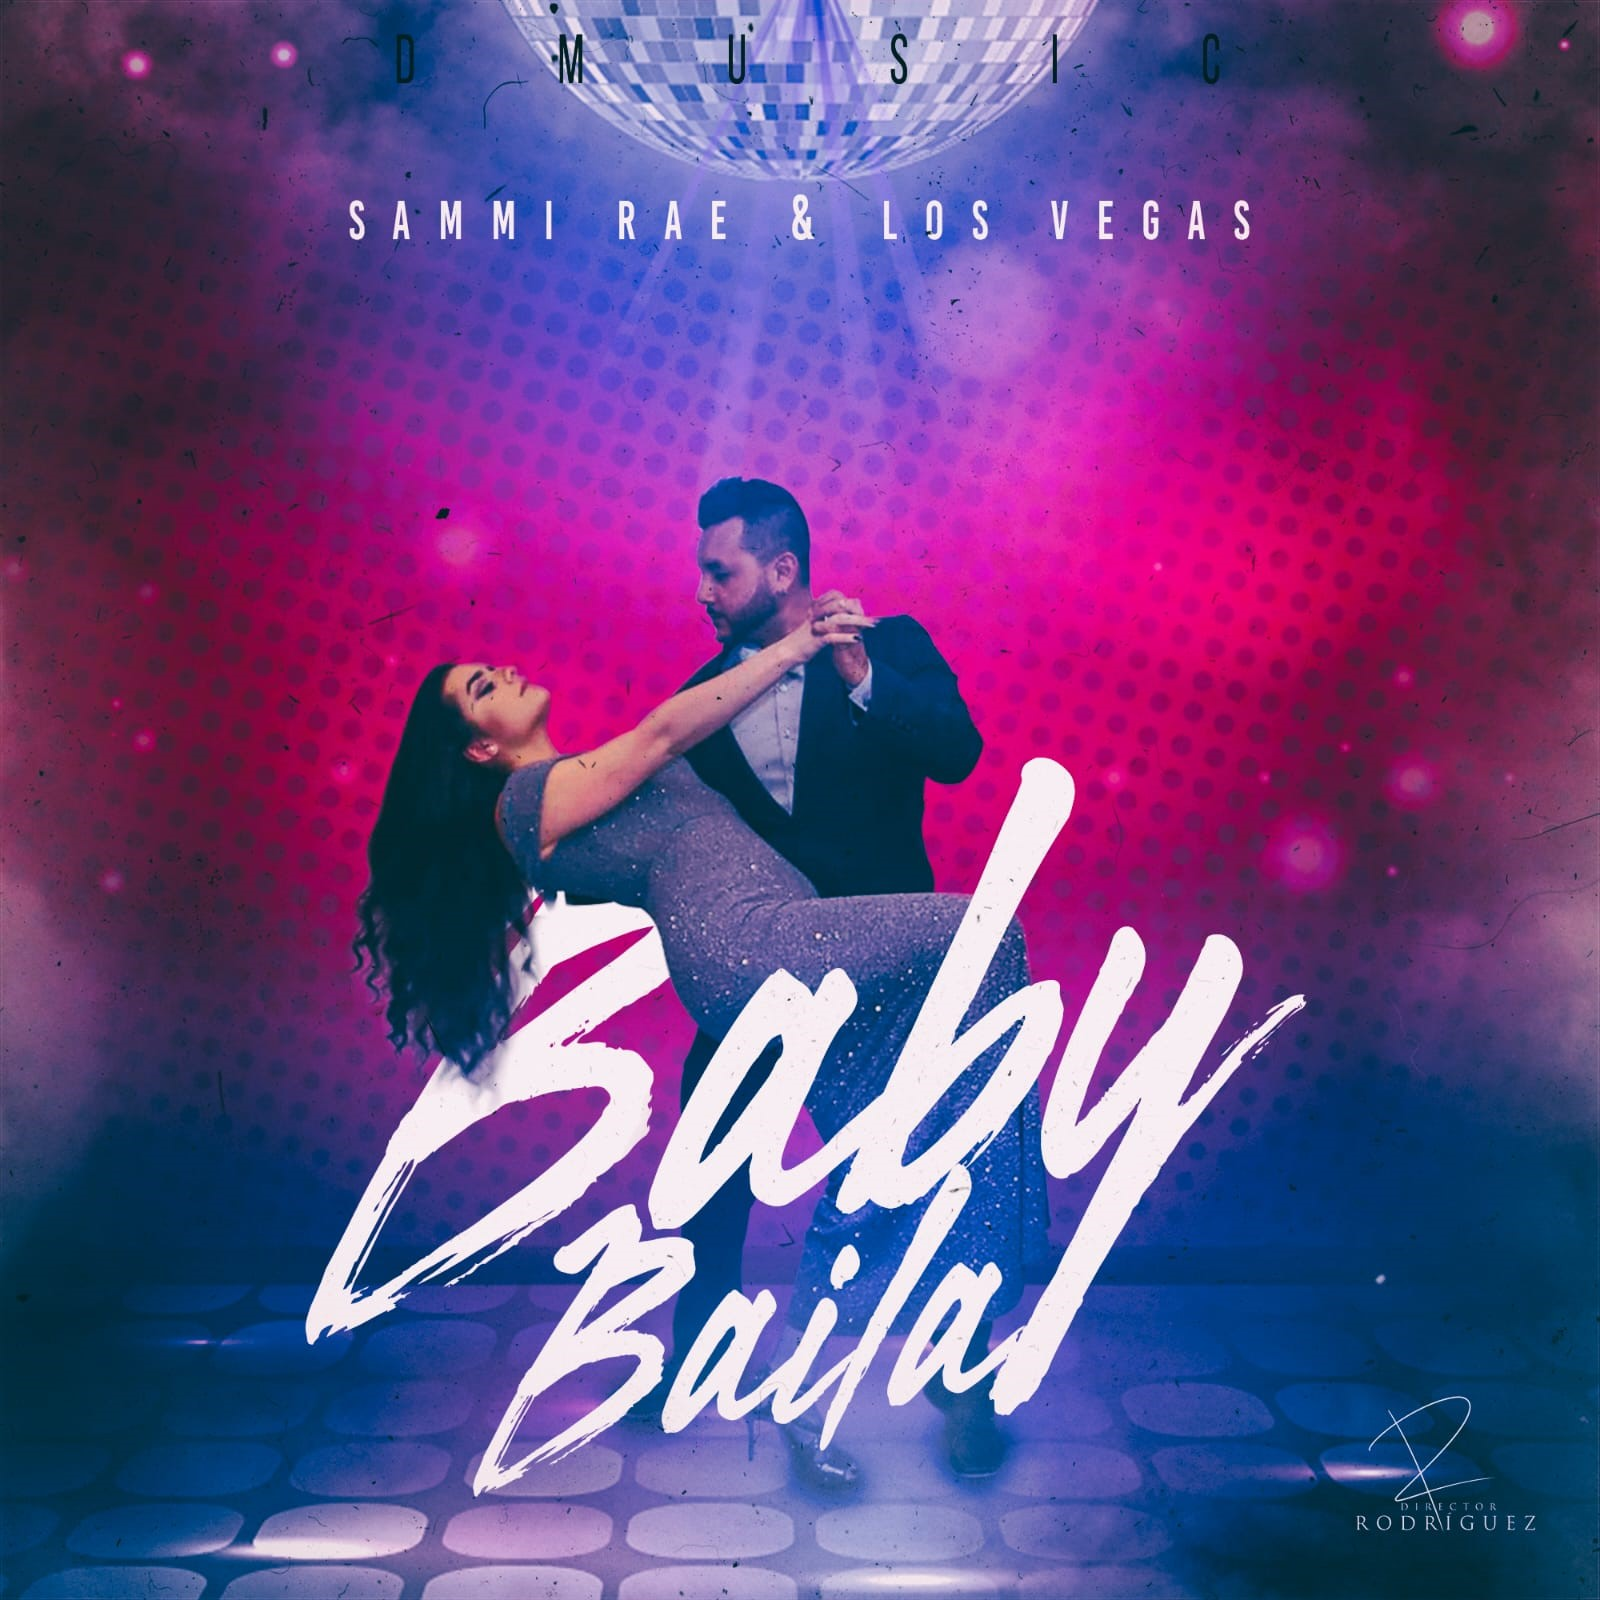 Sammi Rae Murciano & Los Vegas Release Second Single 'Baby Baila'